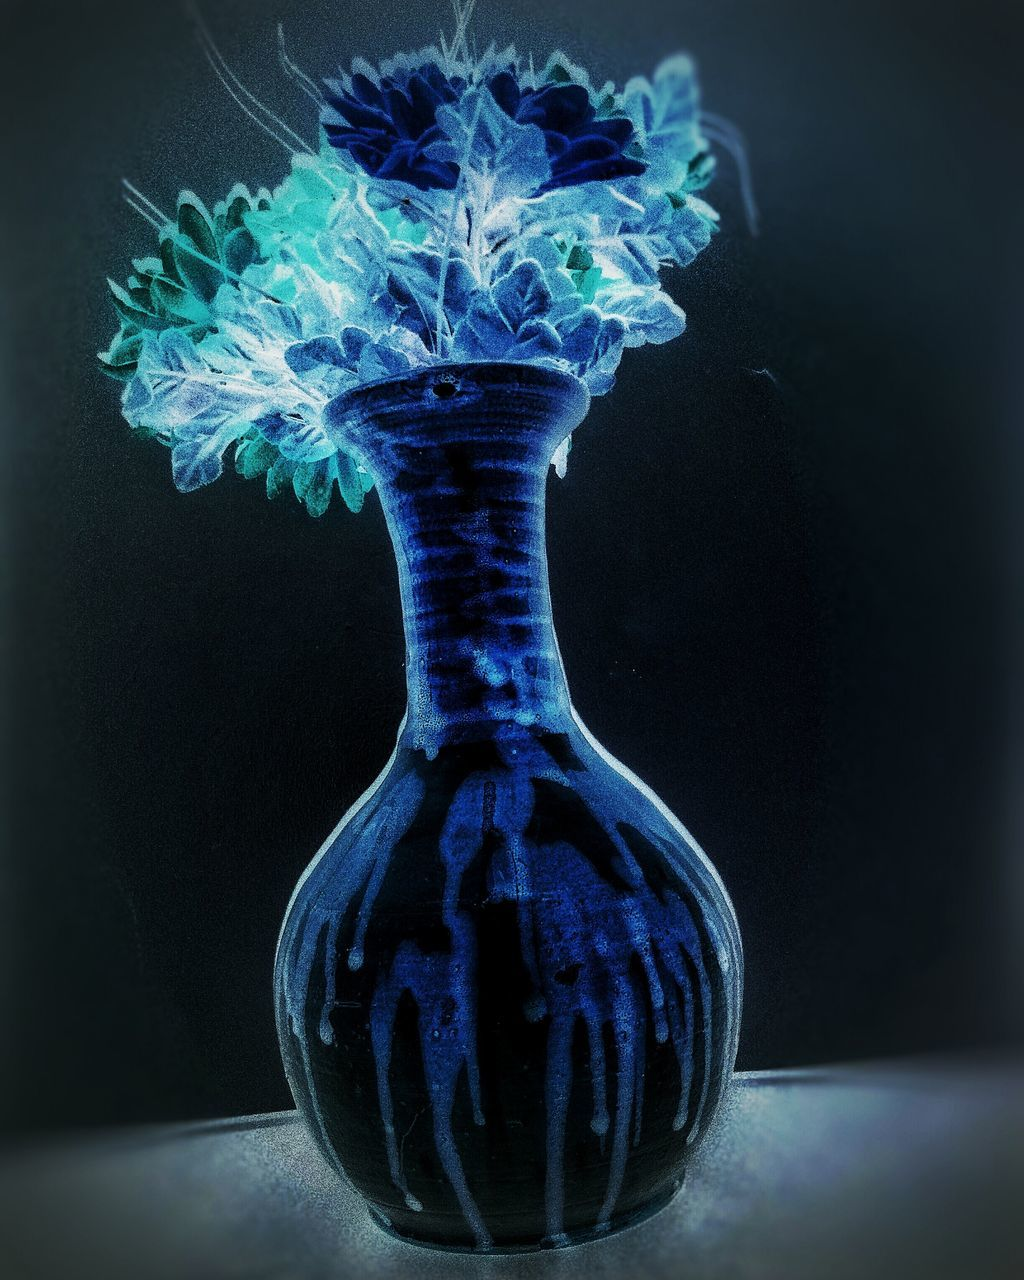 no people, table, black background, studio shot, blue, close-up, indoors, day